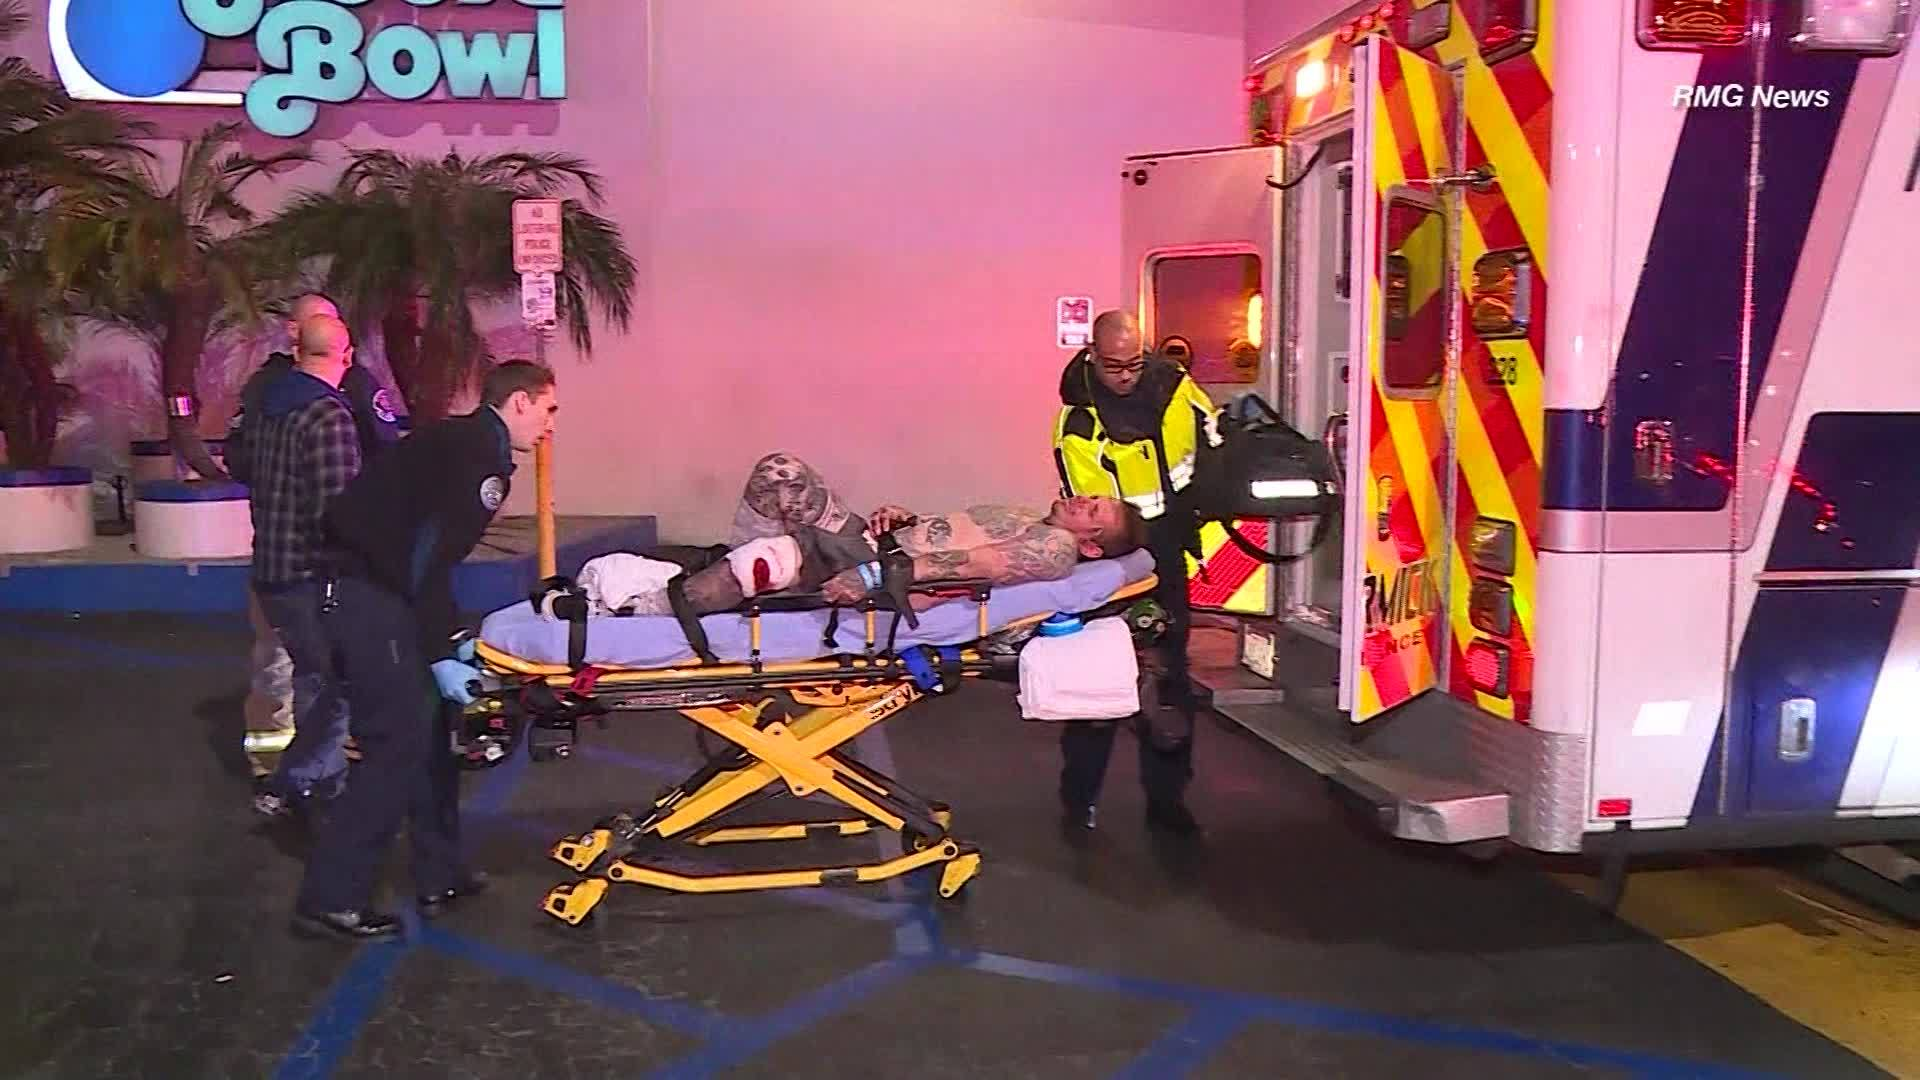 911 calls for California bowling alley shooting